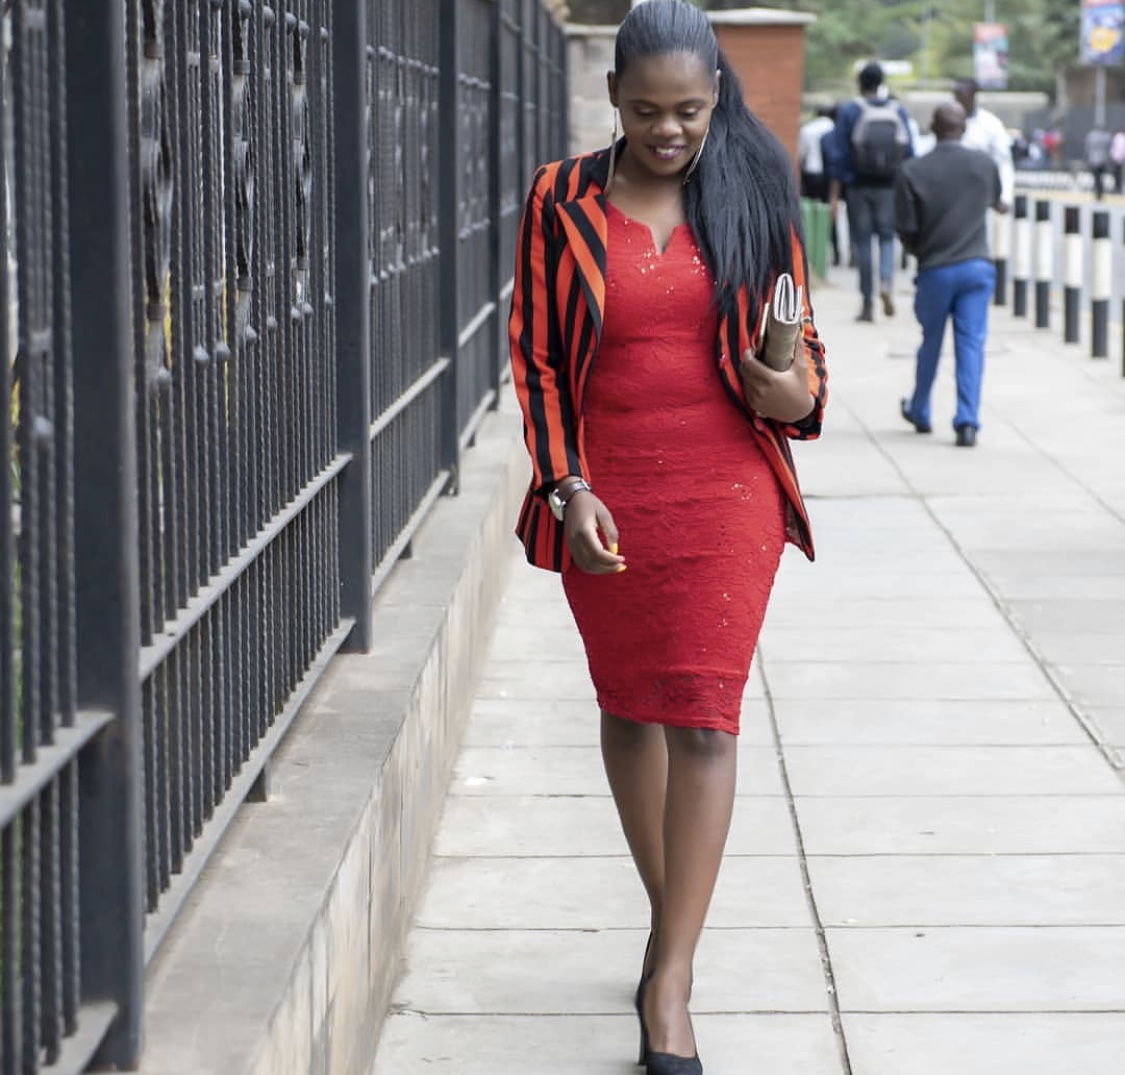 Betty Bayo warns women against walking into marriages blindly — like she did with Kanyari